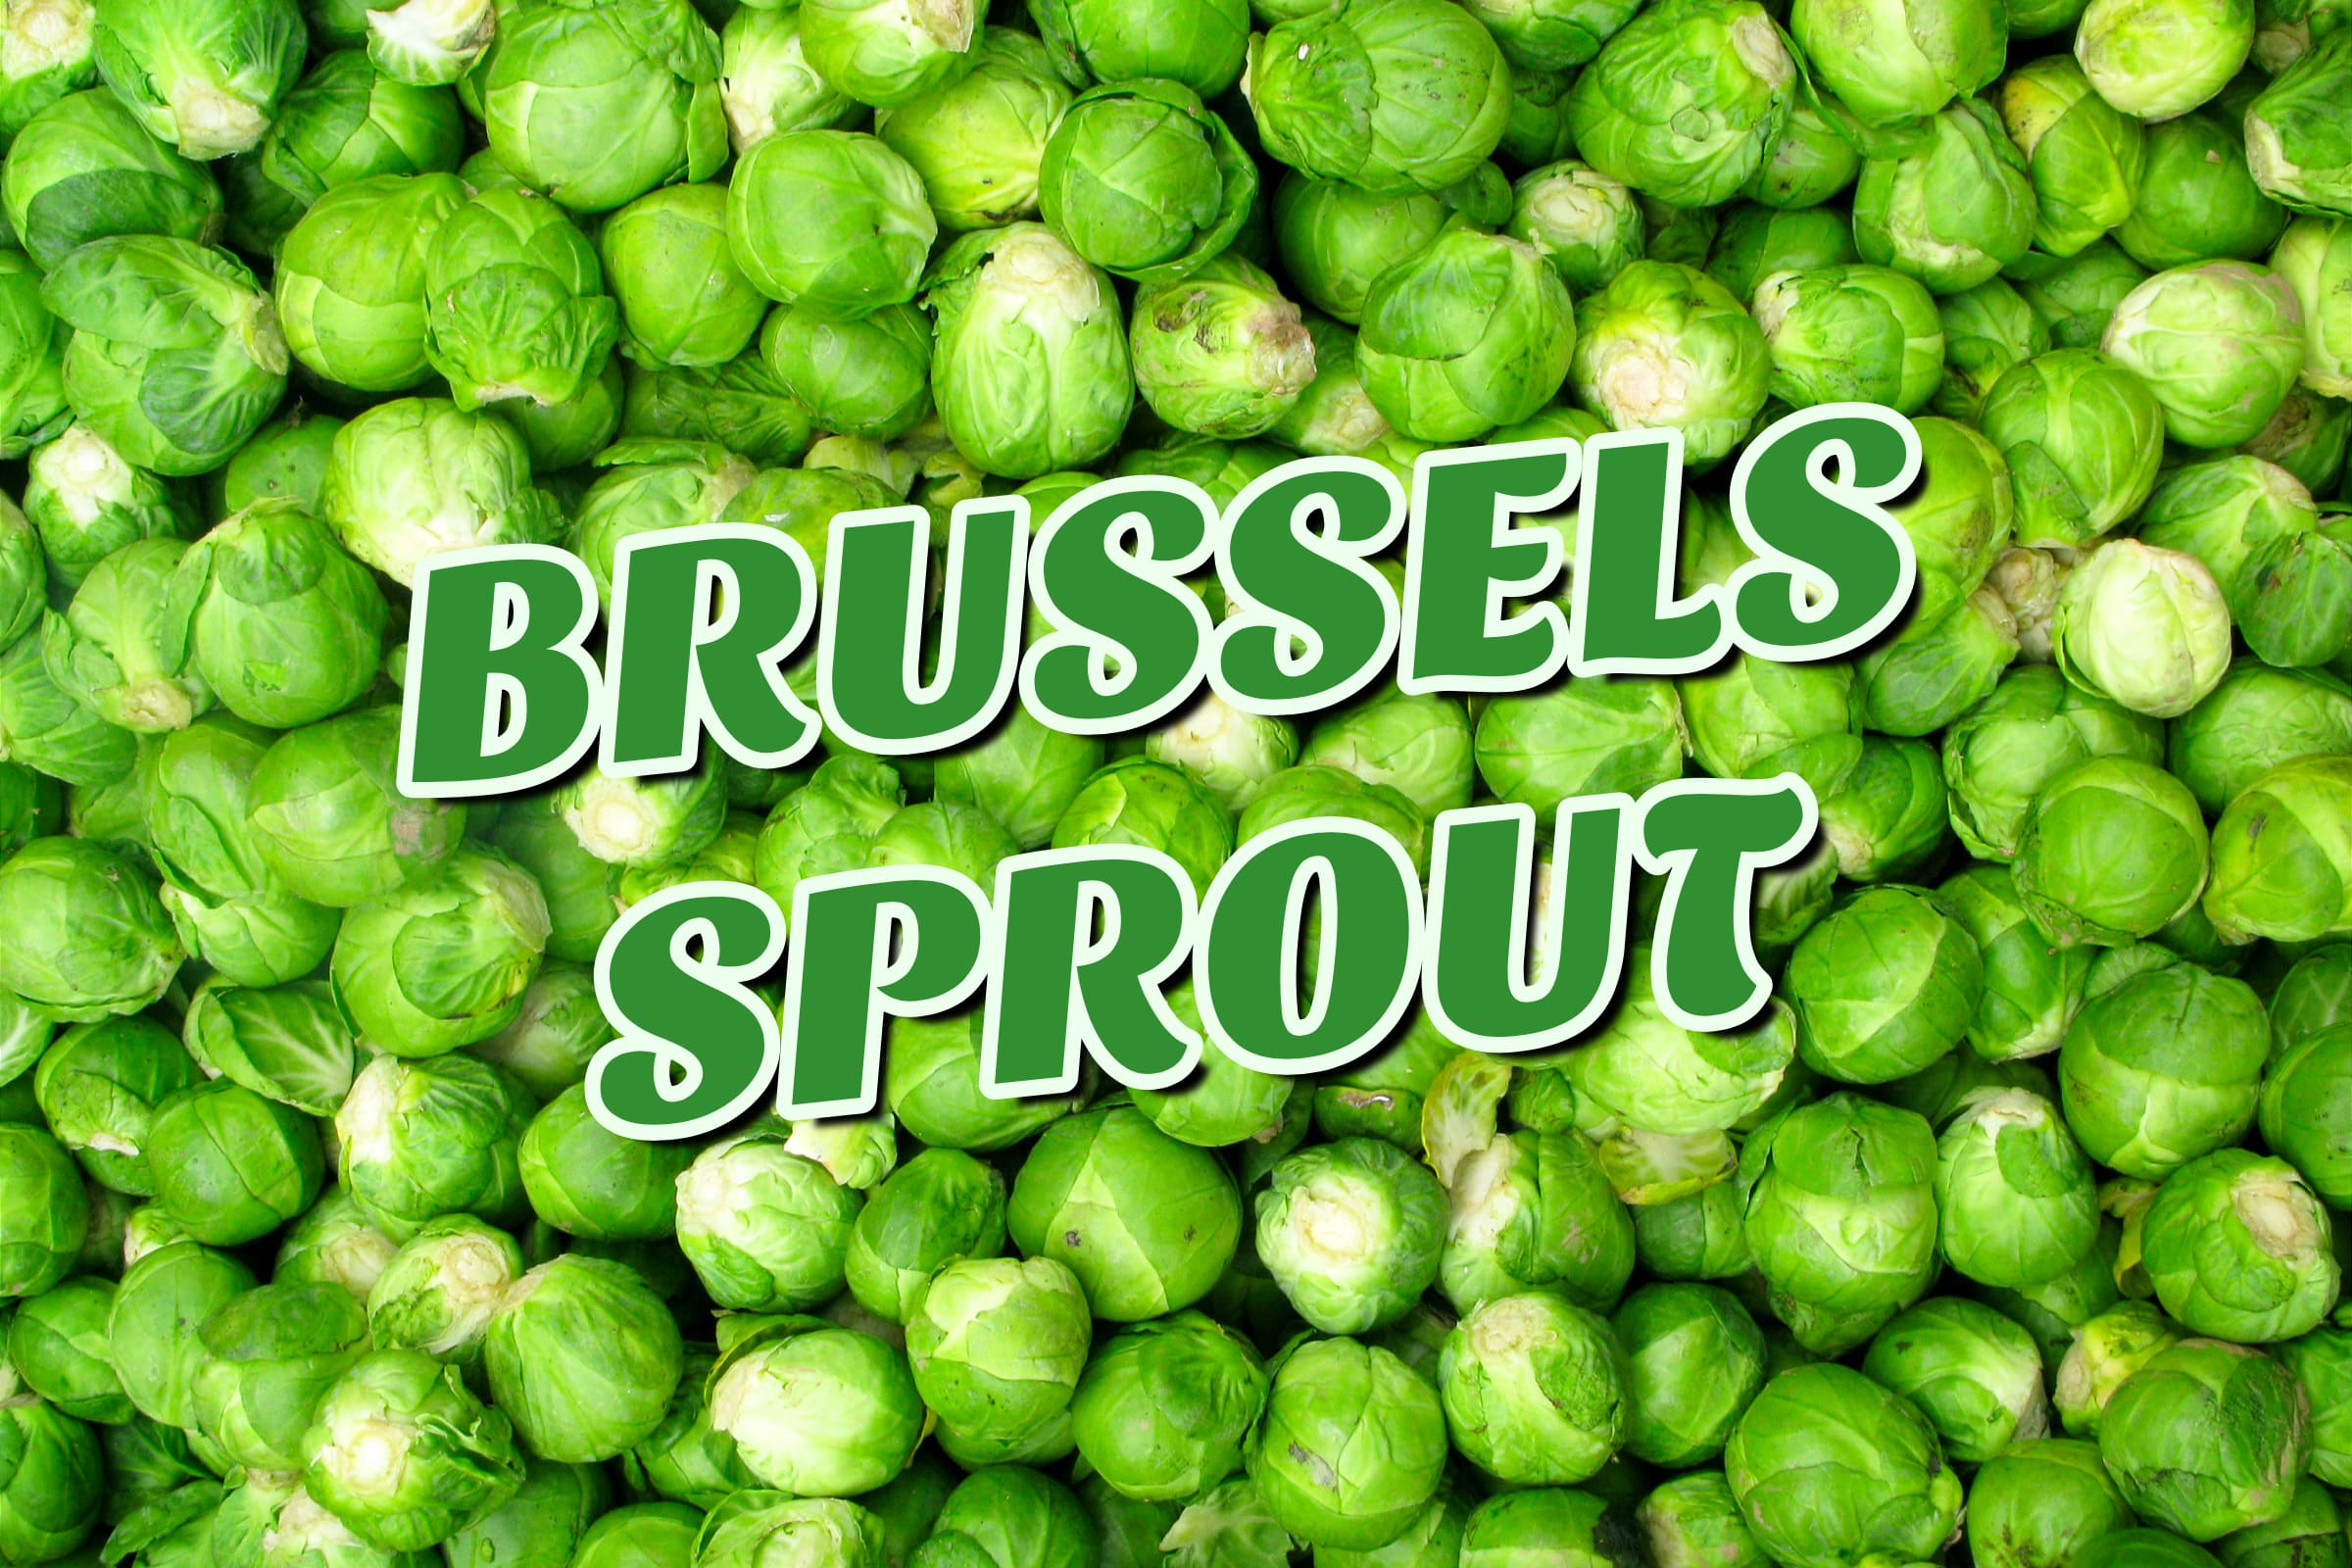 What Is The Brussels Sprout Plant?